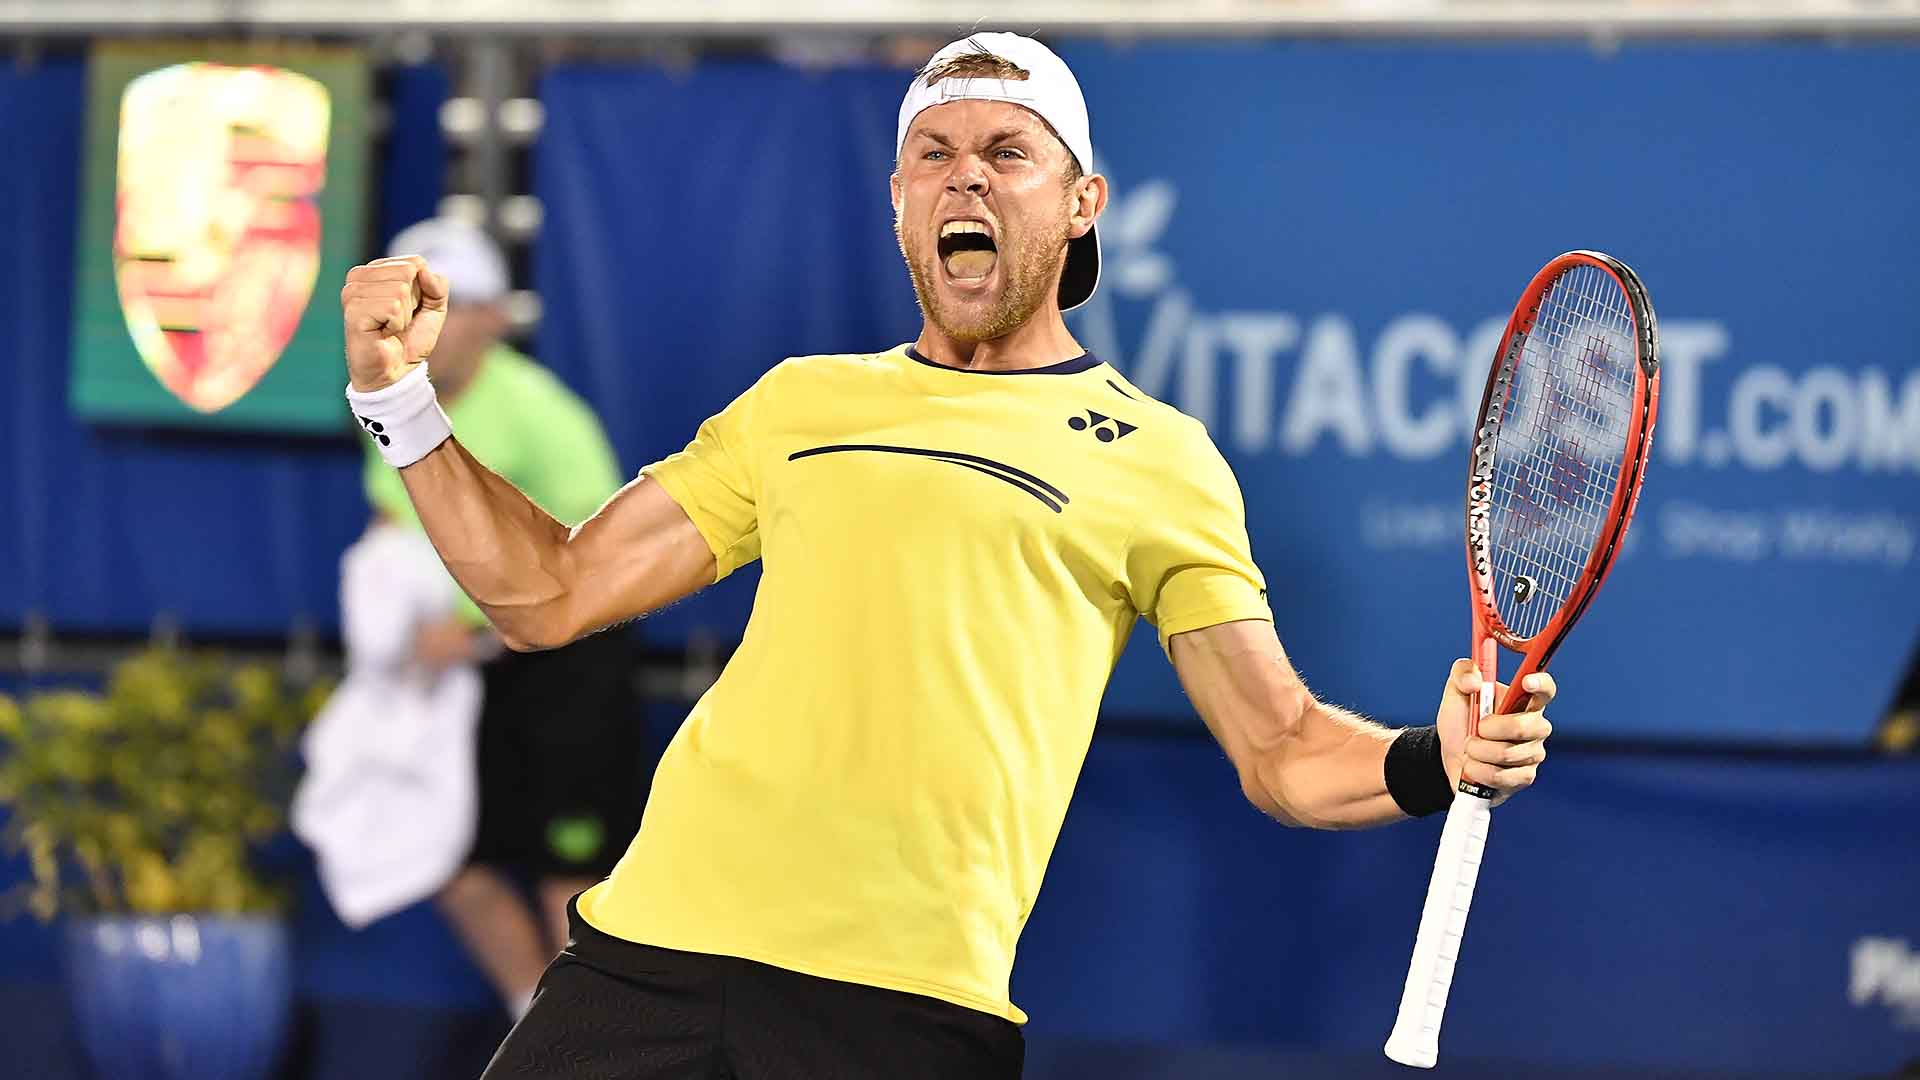 <a href='https://www.atptour.com/en/players/radu-albot/a829/overview'>Radu Albot</a> overcomes <a href='https://www.atptour.com/en/players/steve-johnson/j386/overview'>Steve Johnson</a> in a final-set tie-break to reach the <a href='https://www.atptour.com/en/tournaments/delray-beach/499/overview'>Delray Beach Open by VITACOST.com</a> semi-finals.